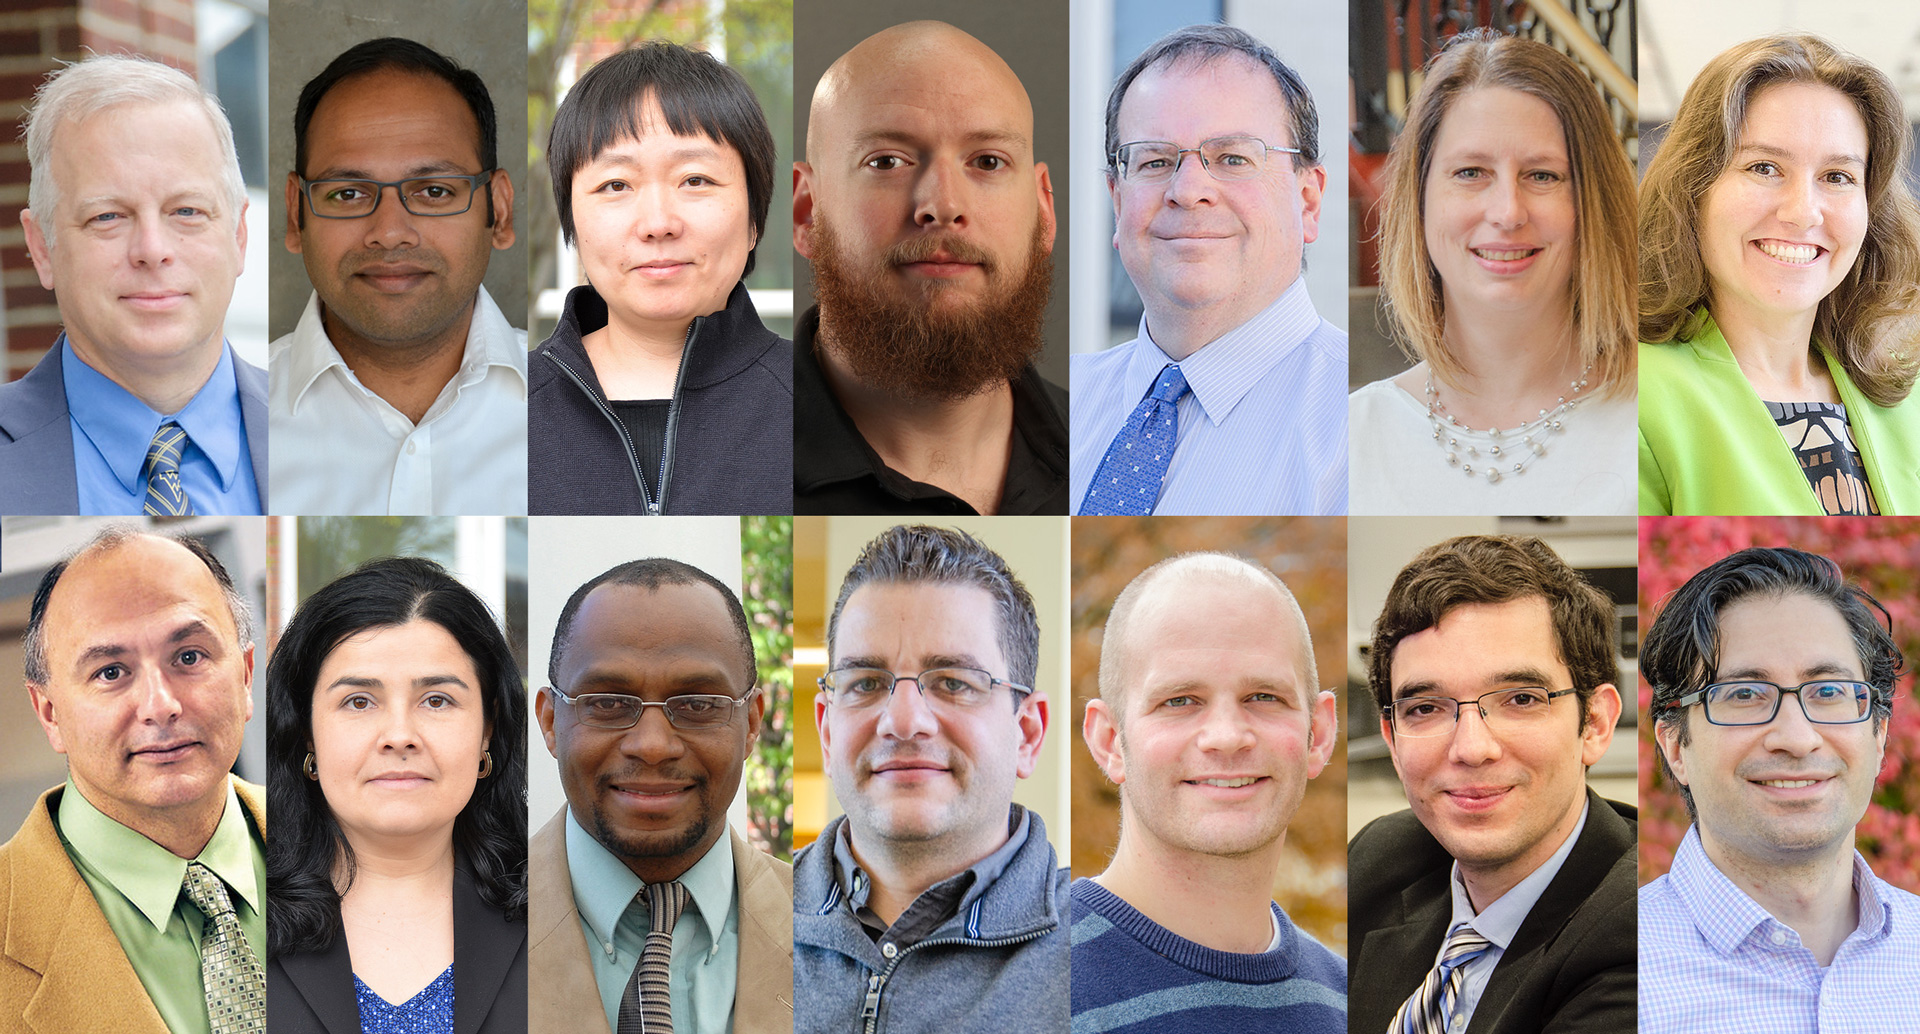 Recipients of the College's Teaching, Research and Advising Awards. (Top row, from left to right) Todd Hamrick, Ashish Nimbarte, Yuxin Liu, Ron Reaser, Brian Woerner, Robin Hissam and Maggie Bennewitz. (Bottom row, from left to right) John Quaranta, Lizzie Santiago, Don Adjeroh, Kostas Sierros, Jason Gross, Fernando Lima, and Berk Tulu.